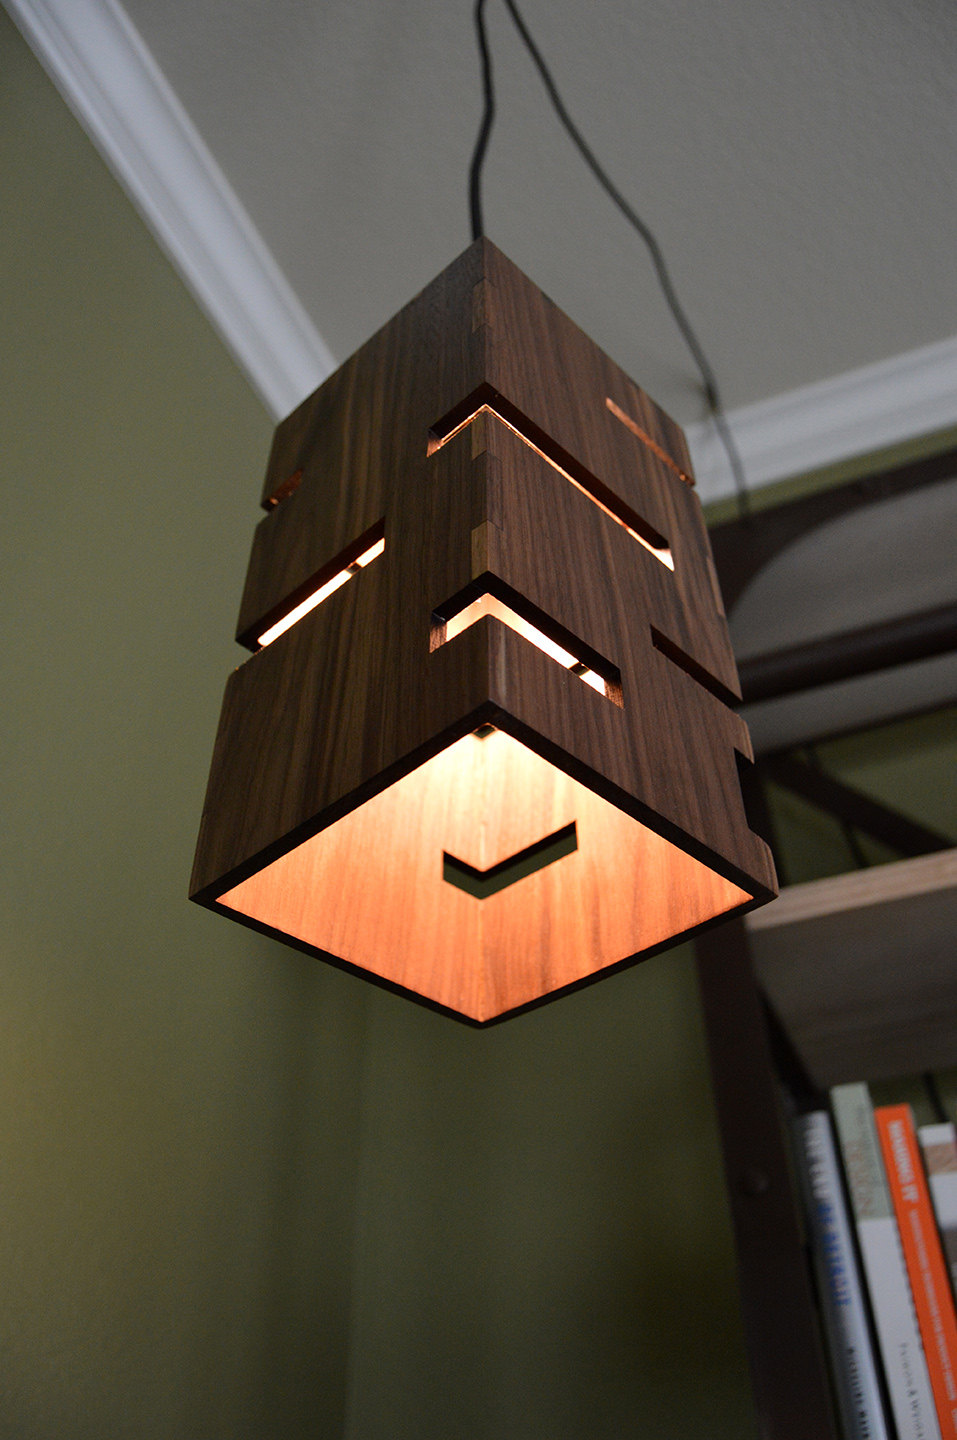 16 perfect geometric light designs to decorate your home with. Black Bedroom Furniture Sets. Home Design Ideas